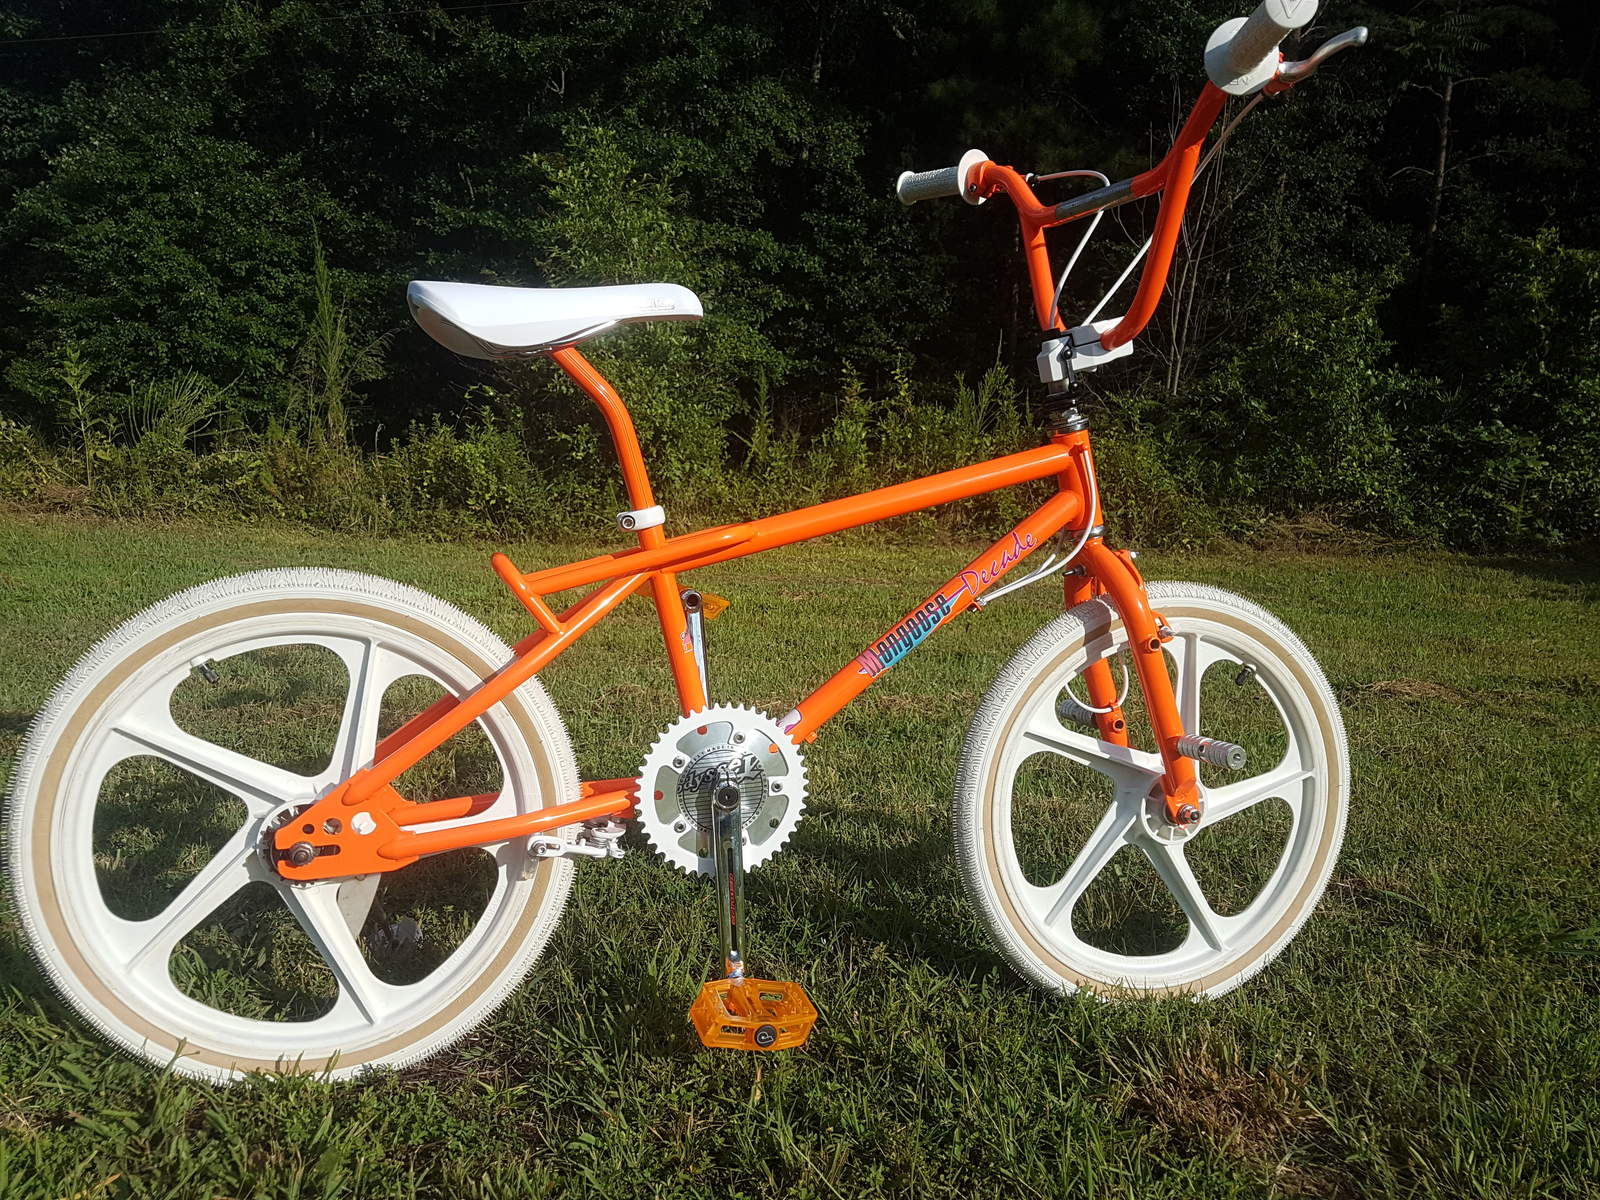 https://s3.amazonaws.com/uploads.bmxmuseum.com/user-images/219850/20190725_1822185d3ed7538b.jpg